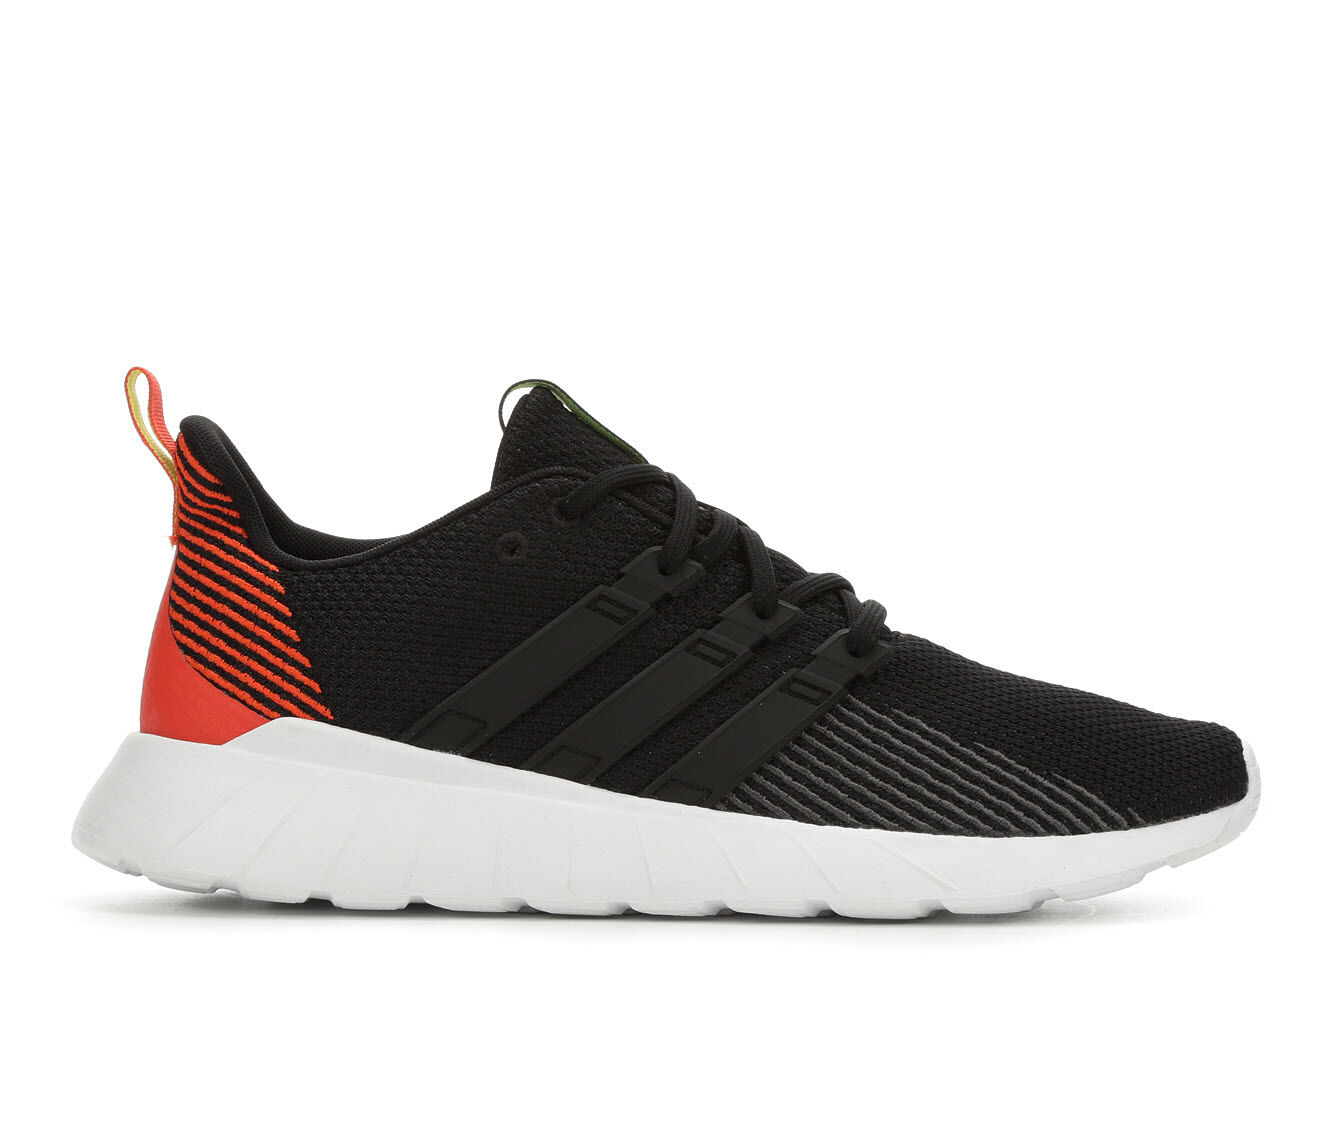 Last style Men's Adidas Questar Flow Running Shoes Blk/Org/Wht